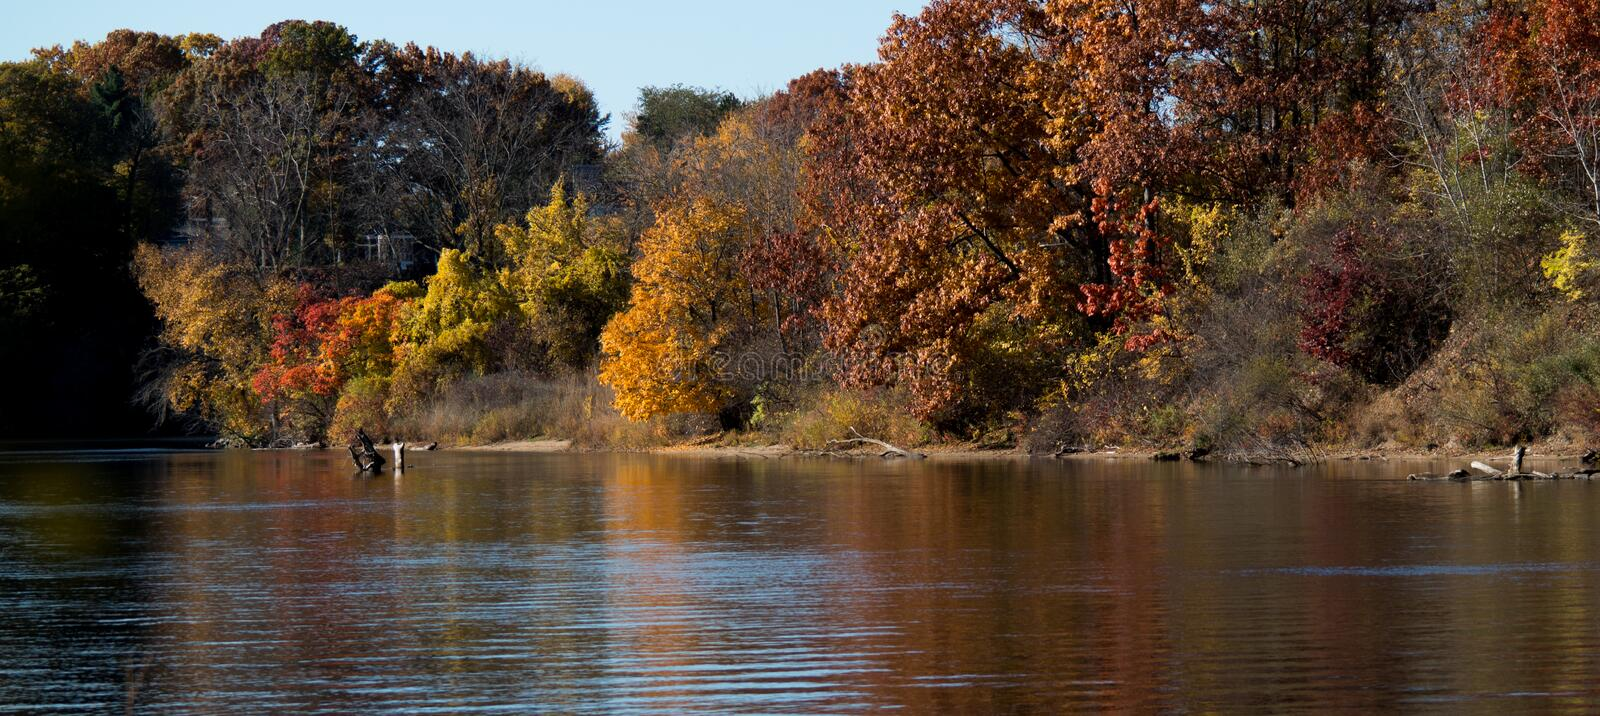 michigan river bank in fall royalty free stock images